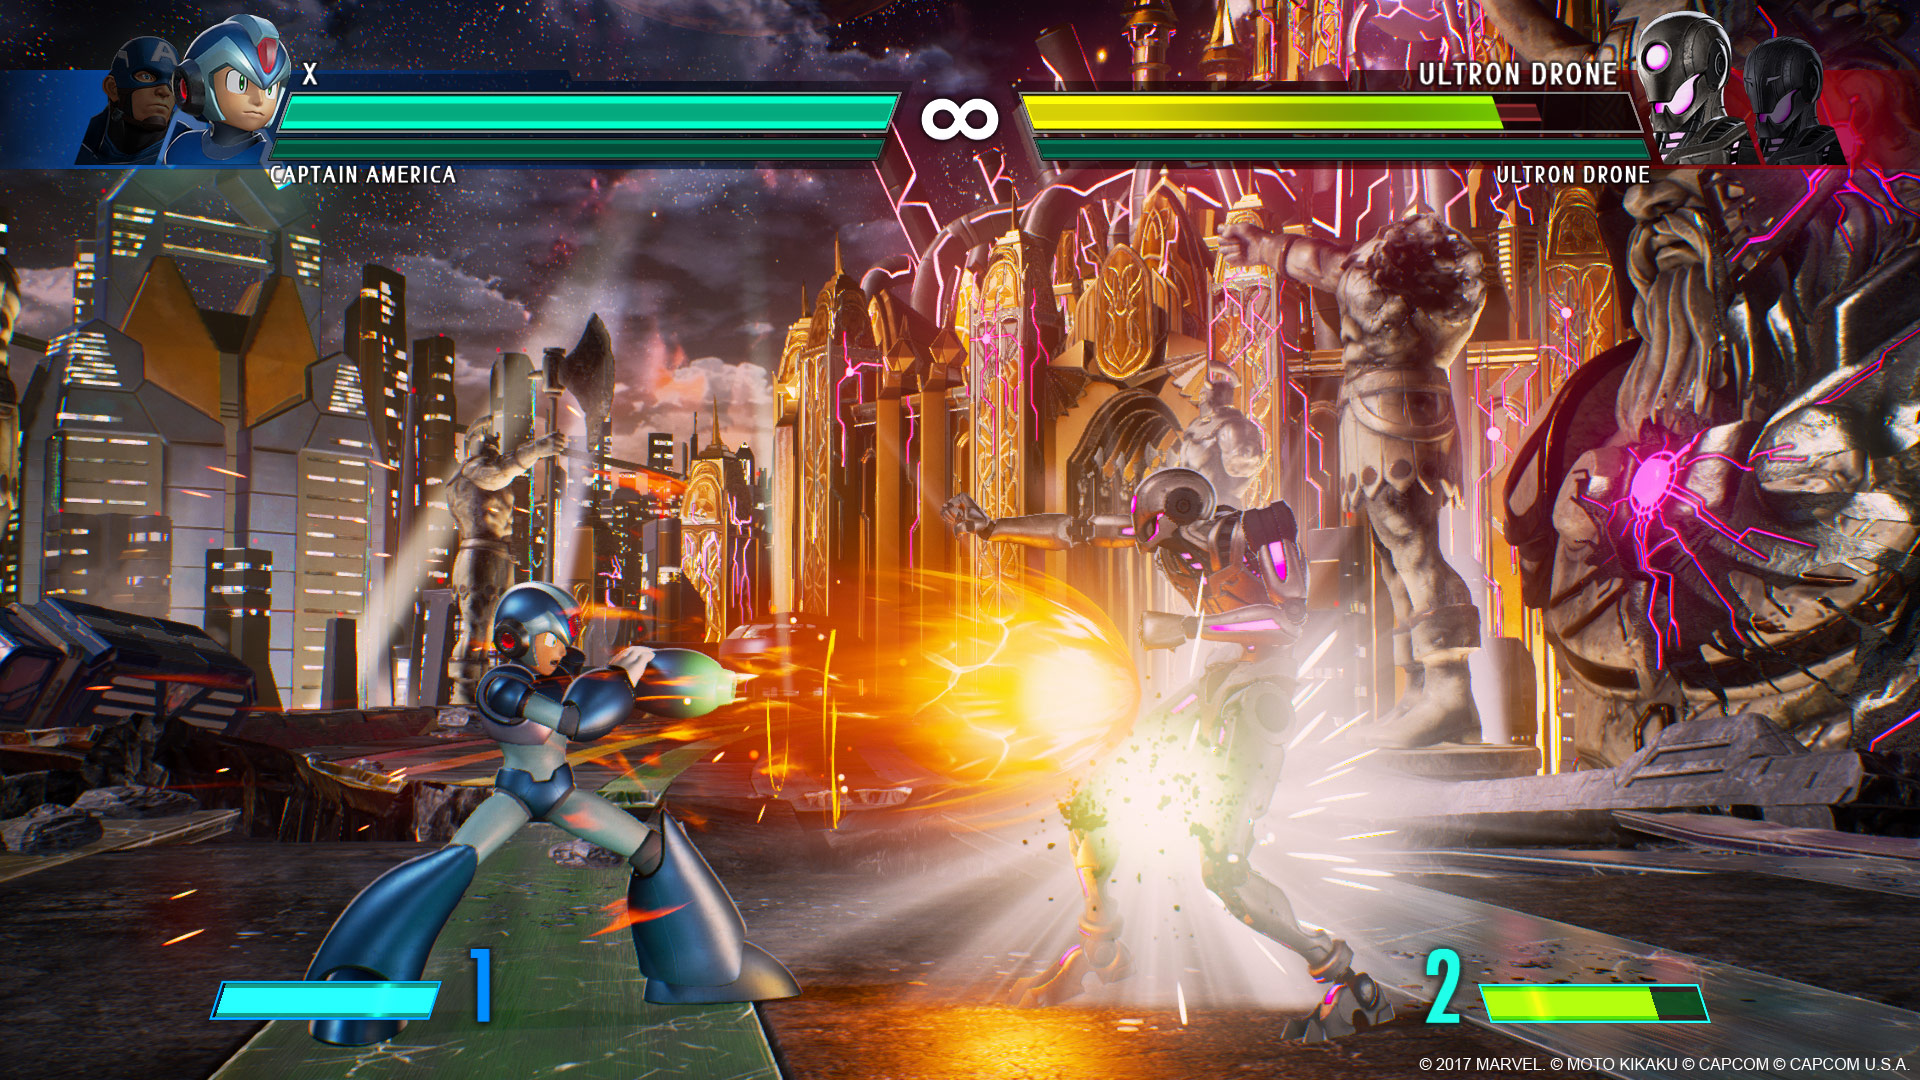 Marvel vs. Capcom: Infinite cover art and new character images from E3 2017 21 out of 26 image gallery